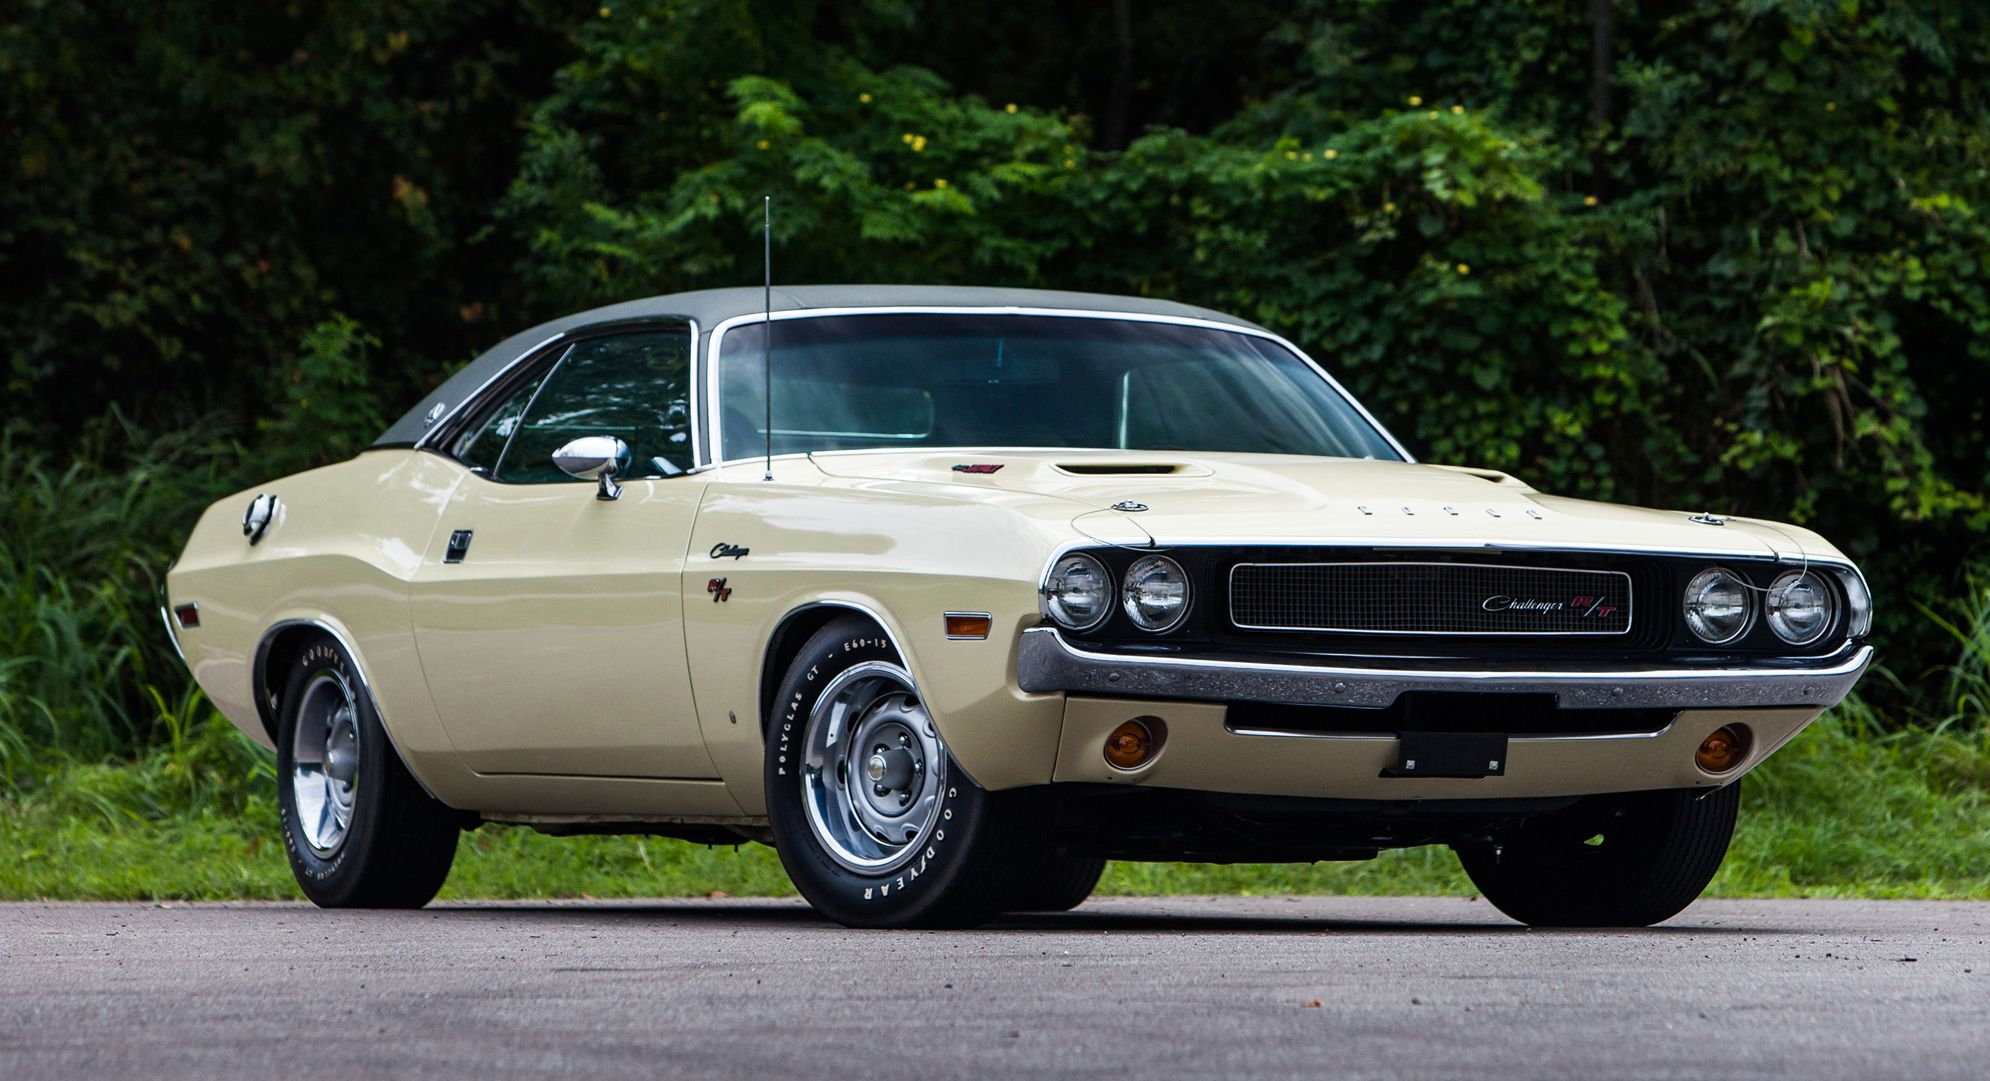 1970 Dodge Challenger R T SE 440 Six Pack Formal Hardtop